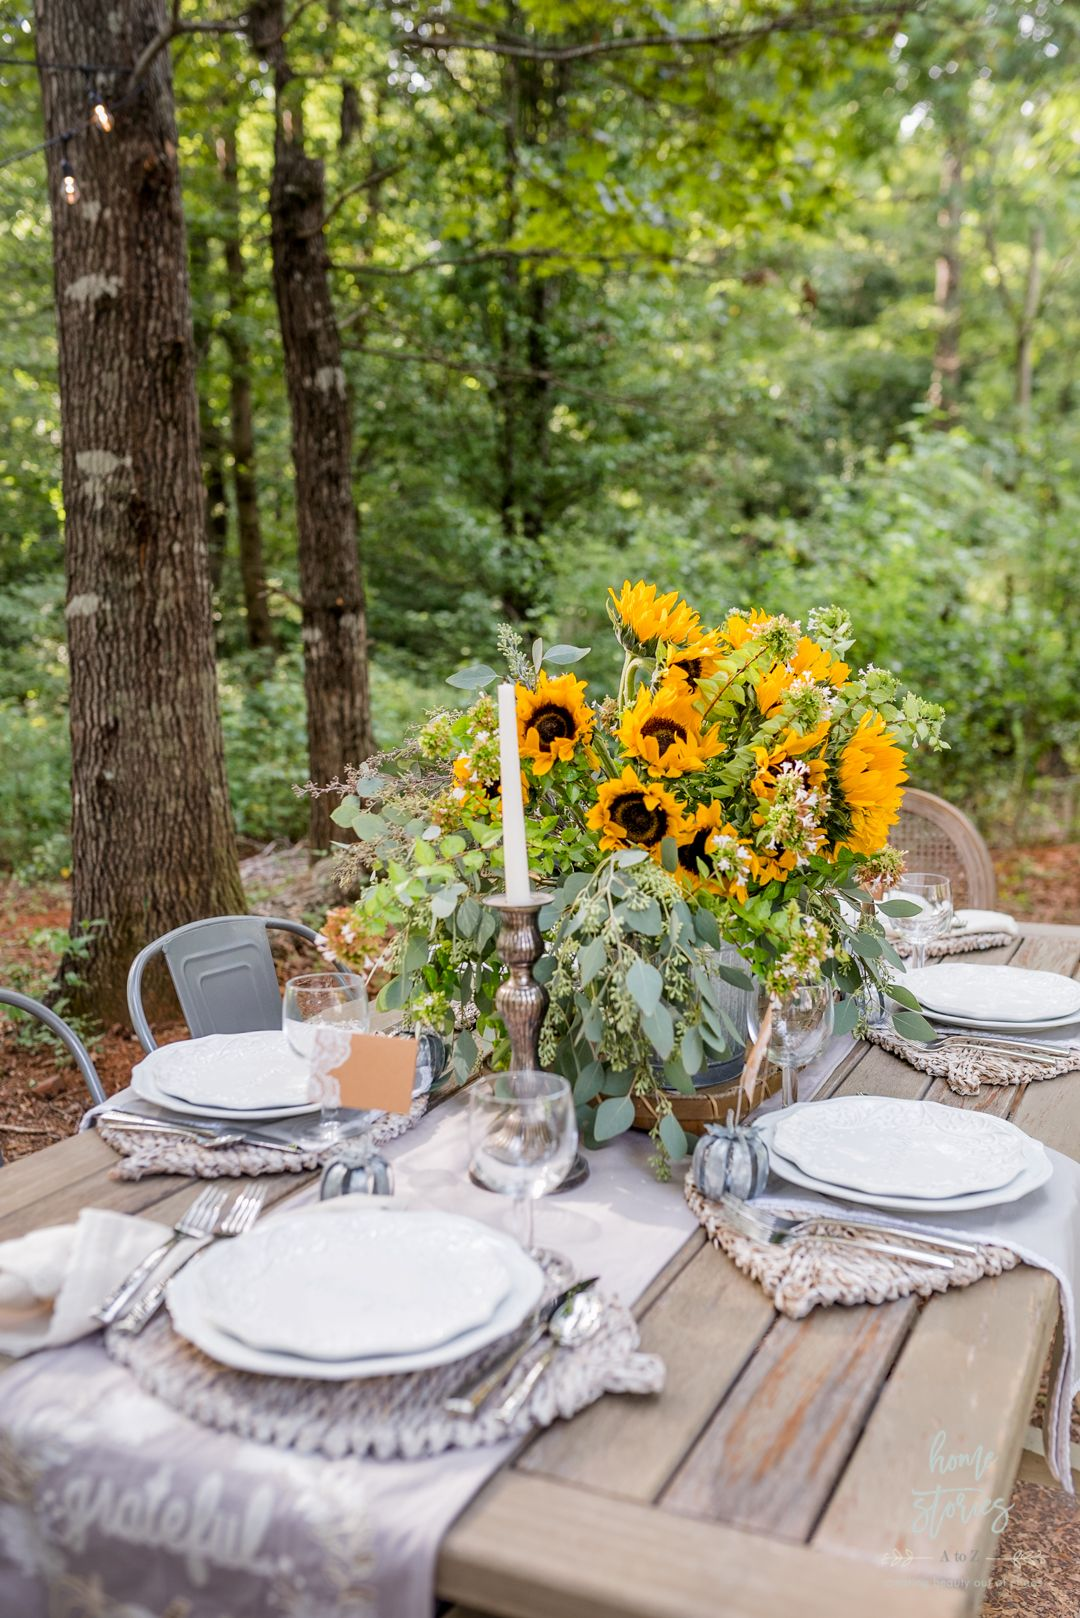 5 Outdoor Entertaining Tips To Creating